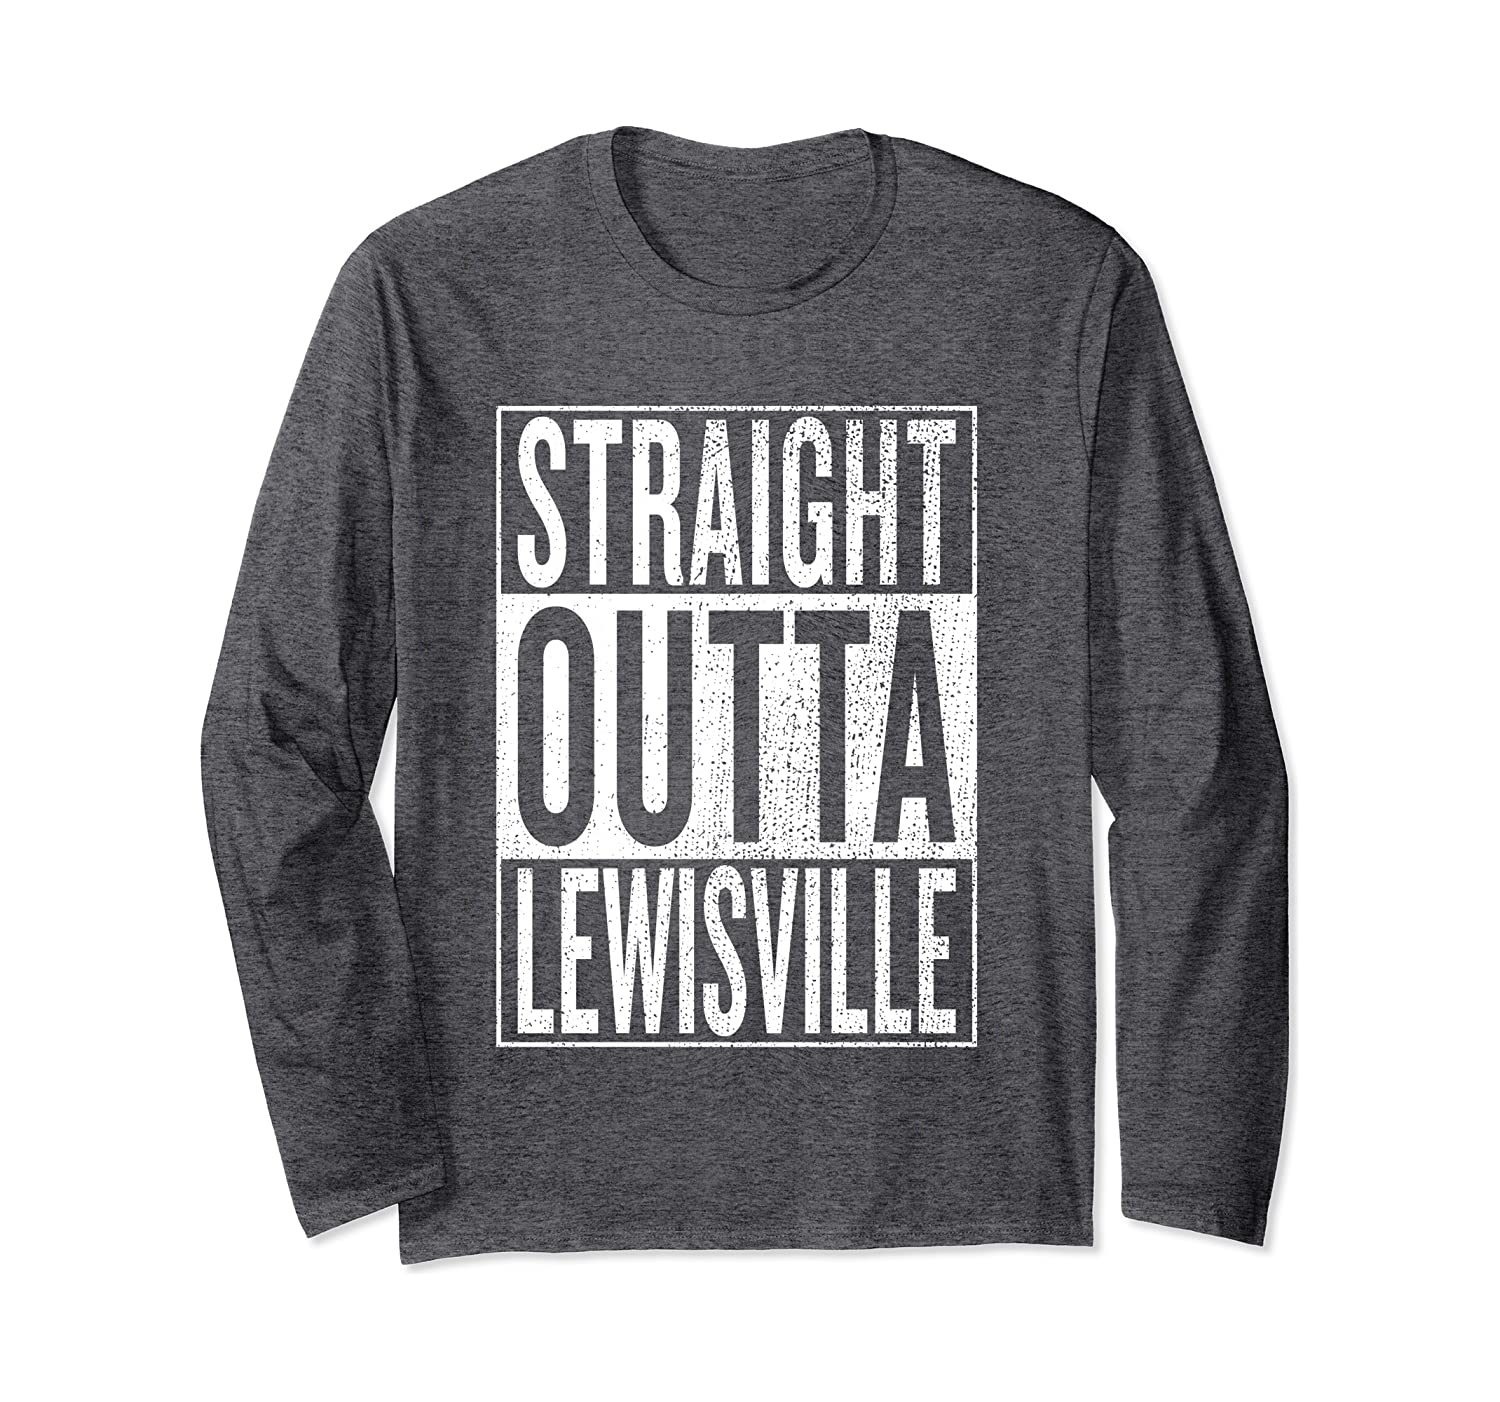 Straight Outta Lewisville Great Travel Outfit & Gift Idea Long Sleeve T-Shirt